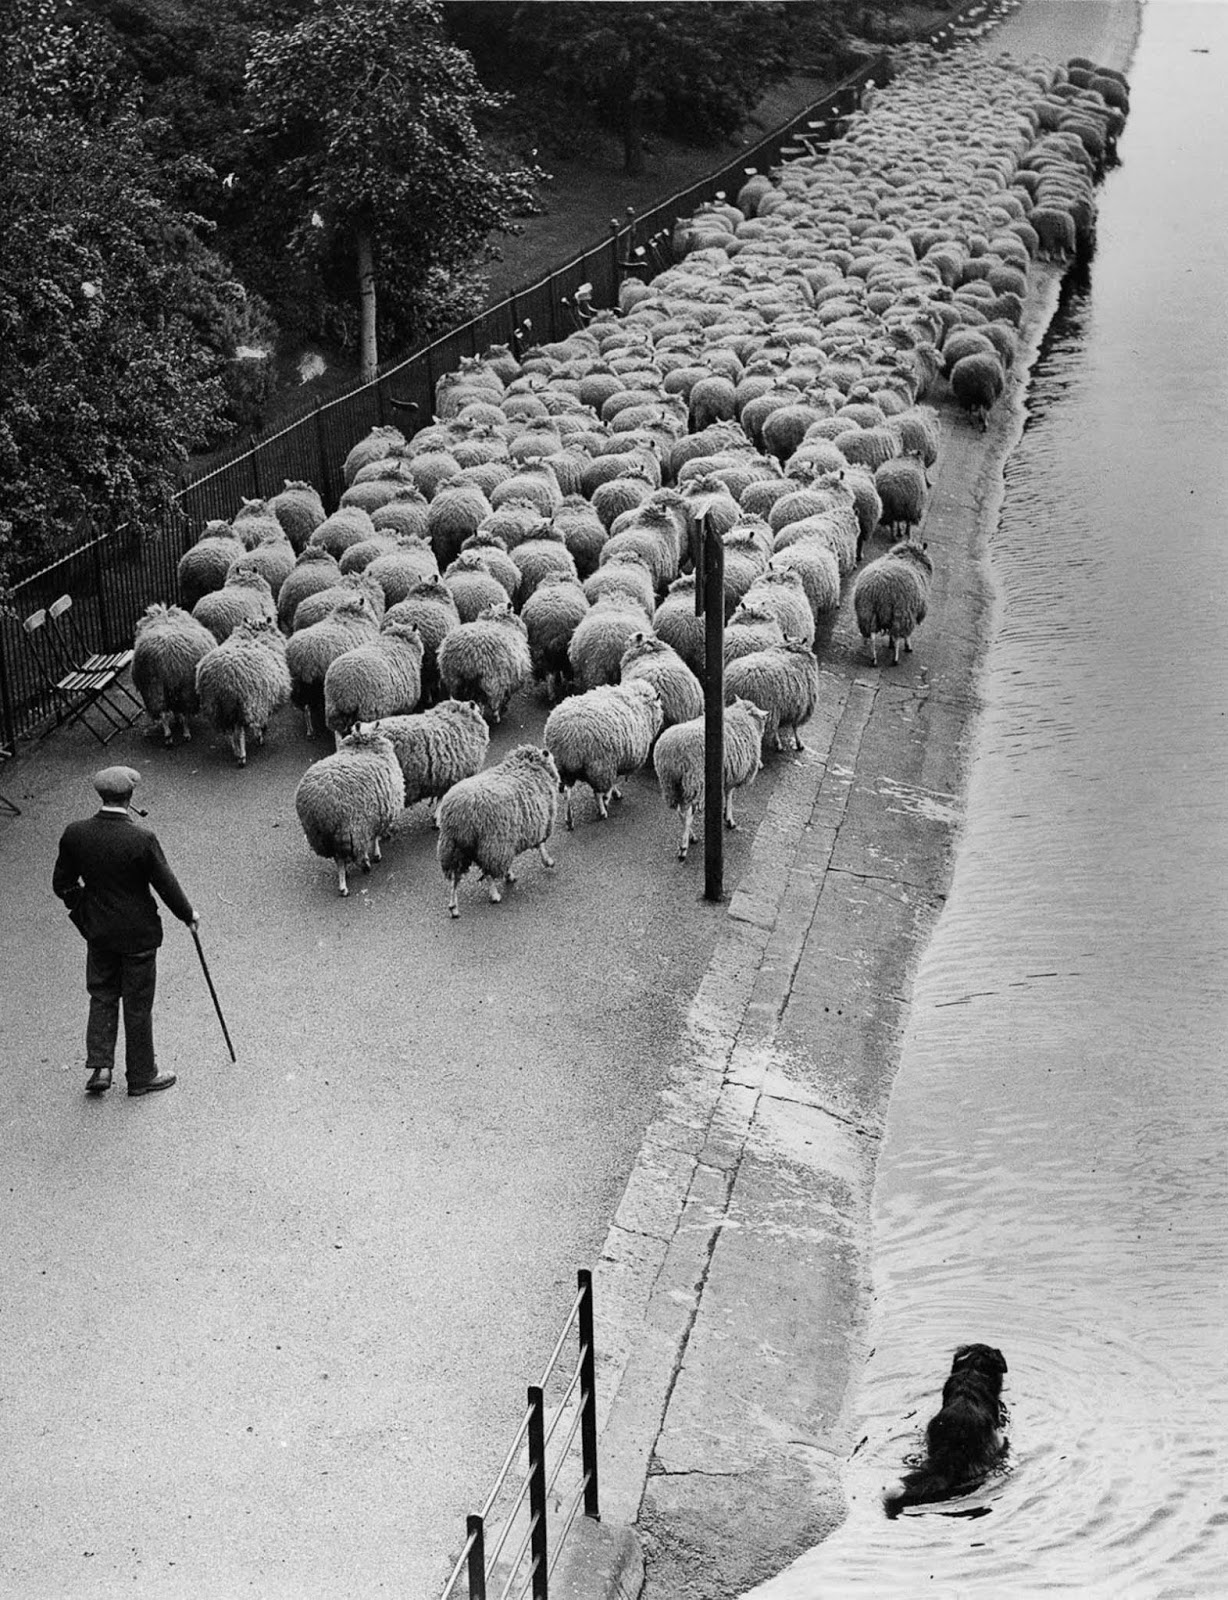 When London parks used sheep as natural lawnmowers